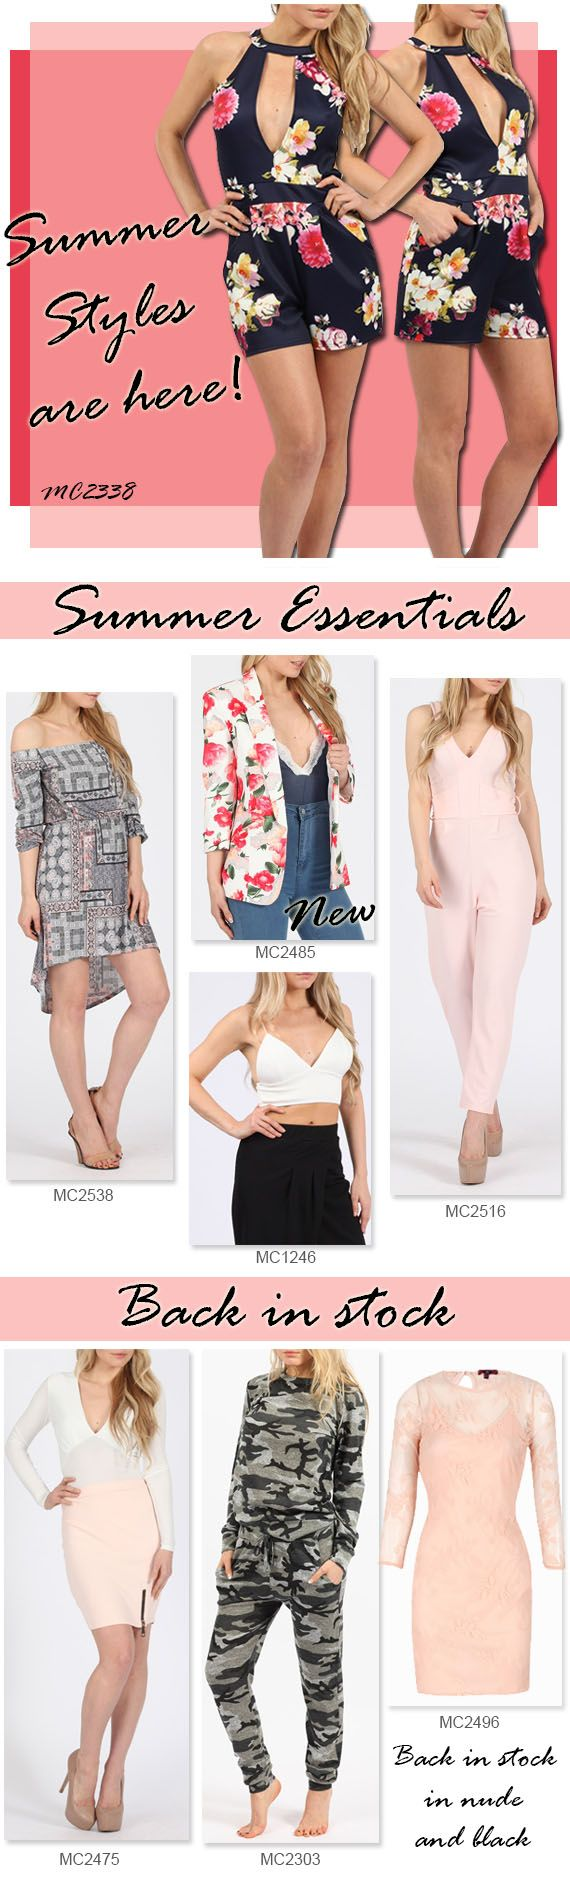 Missi Clothing – one of the most reputed names you must have come across while going through the list of clothing homes and wholesalers. This house is situated in Manchester in UK and is catering to the requirements of wholesale ladies fashion in UK and USA in the best possible manner since a long time.